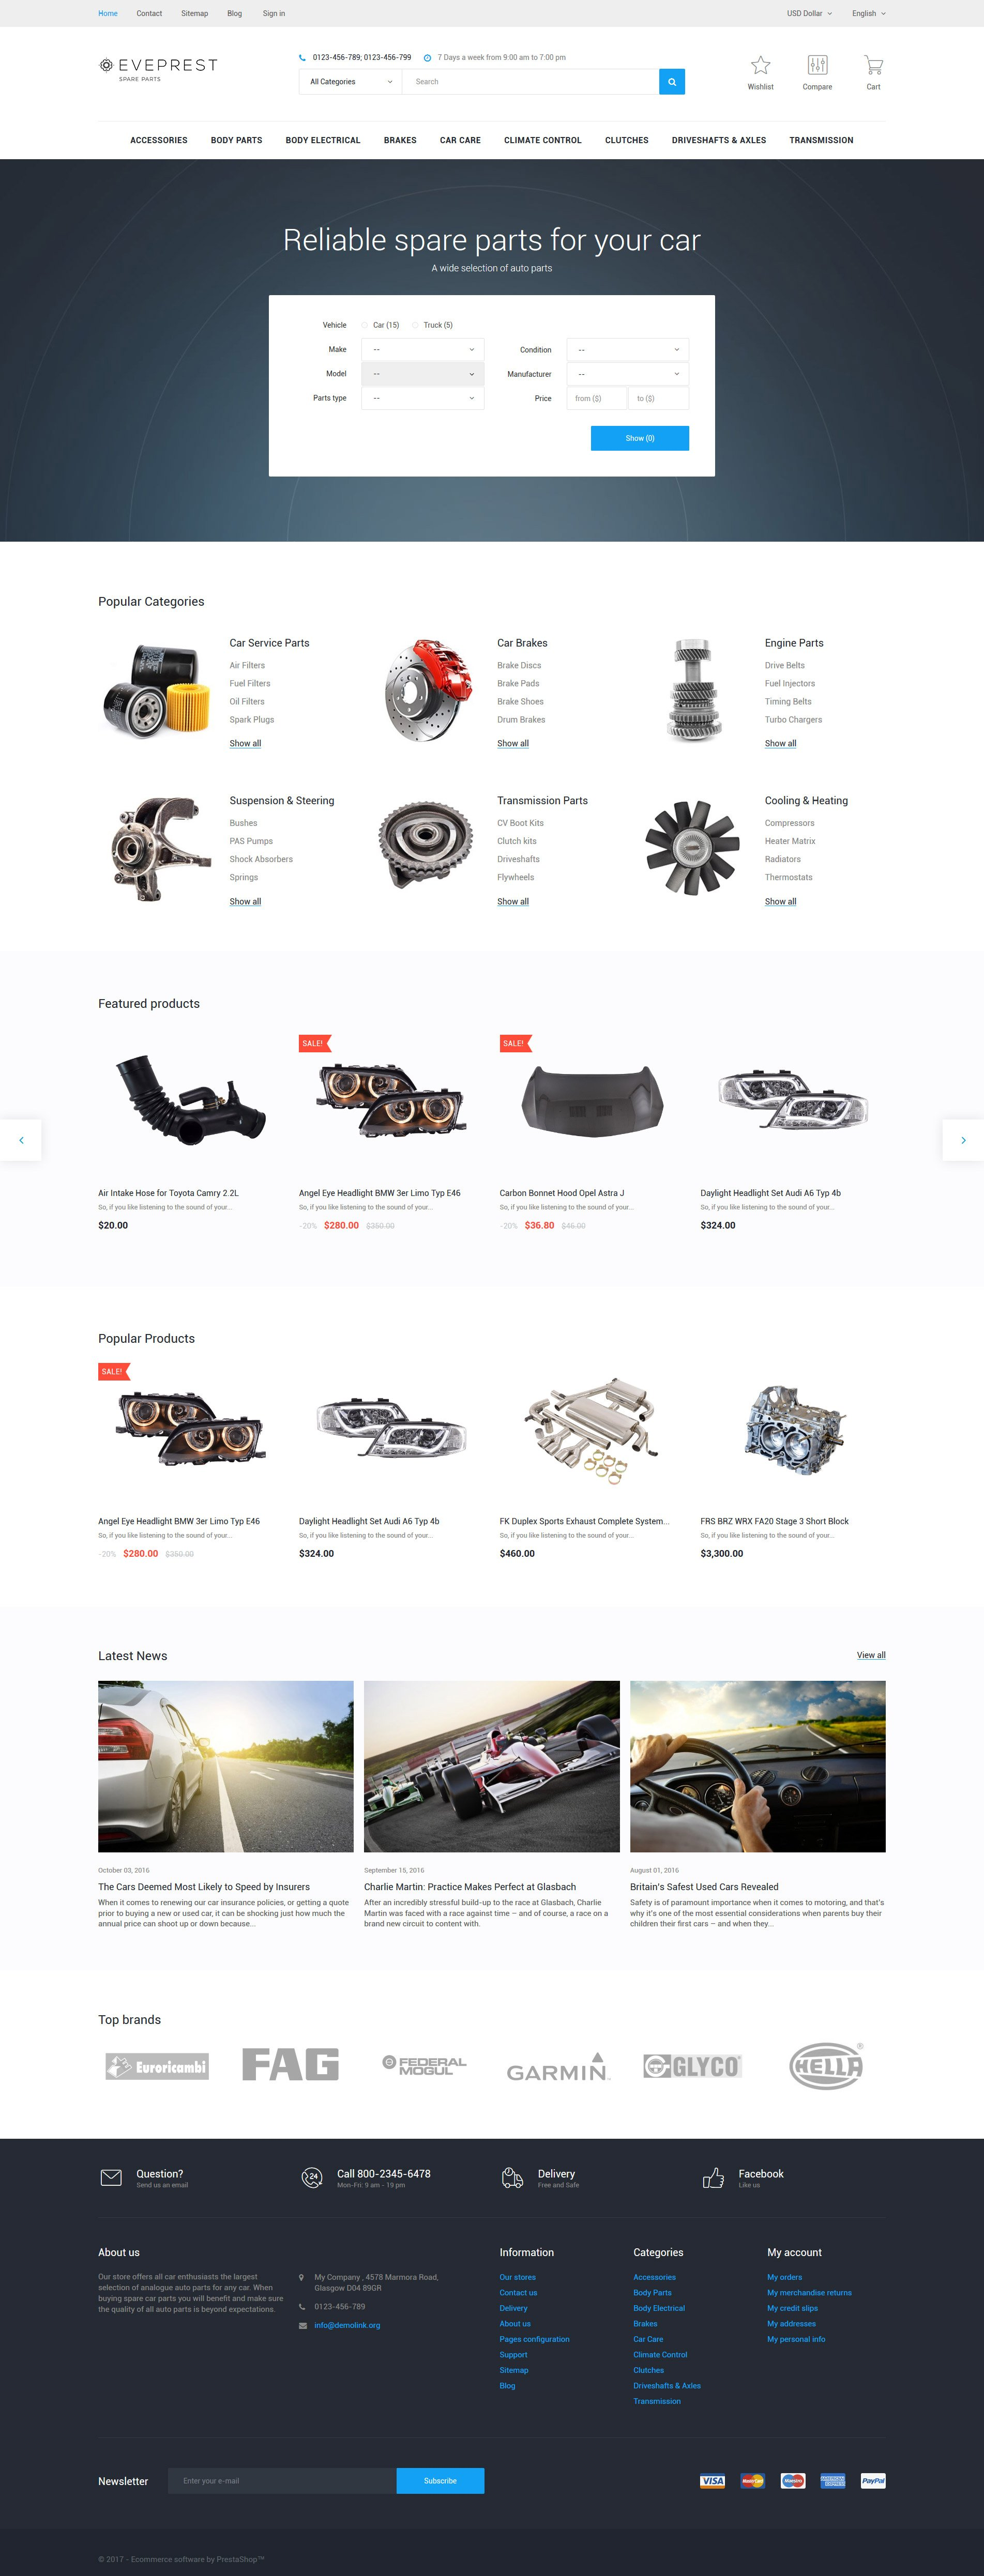 Website Design Template 62342 - air freshener cooling headliners battery accessories dashboard cover lighting bug shield decals racing novelties bulk hose electrical rear deck covers custom fit electronics seat